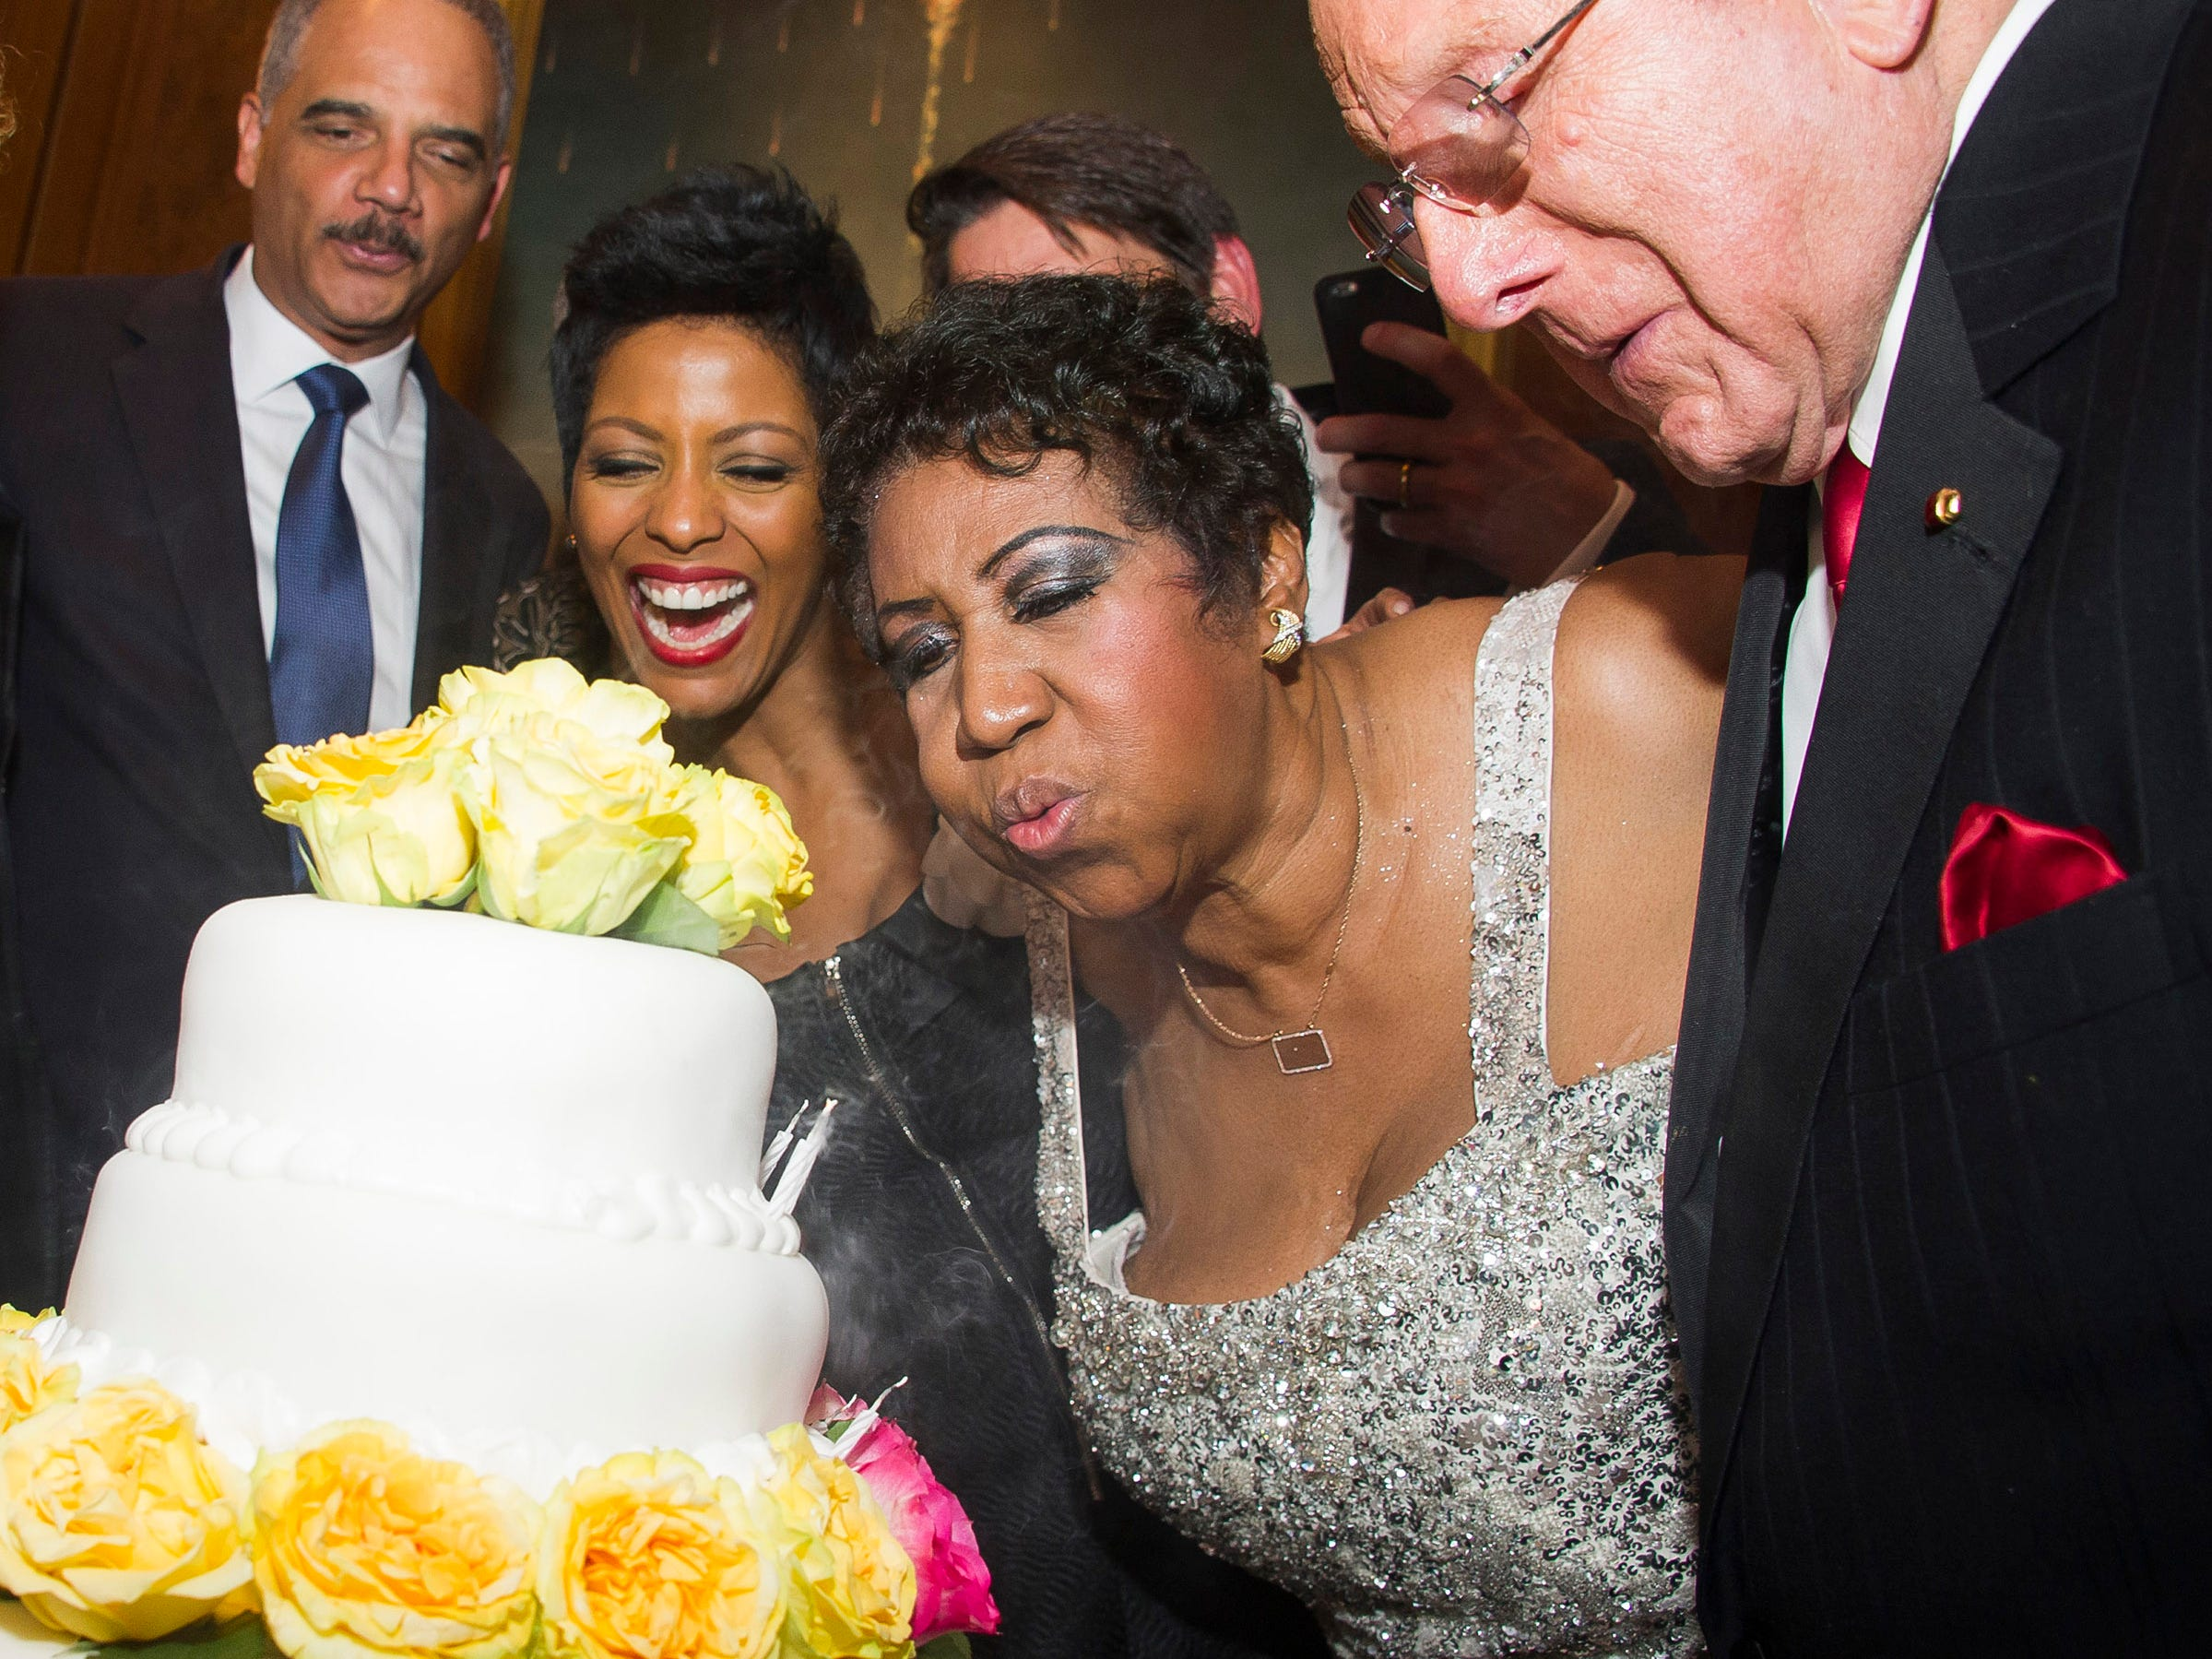 Aretha Franklin blows out the candles on her birthday cake accompanied by, from left to right, Attorney General Eric Holder, Tamron Hall and Clive Davis during Aretha's annual birthday bash at The Ritz Carlton on Sunday, March 22, 2015, in New York. (Photo by Charles Sykes/Invision/AP) ORG XMIT: NYCS108